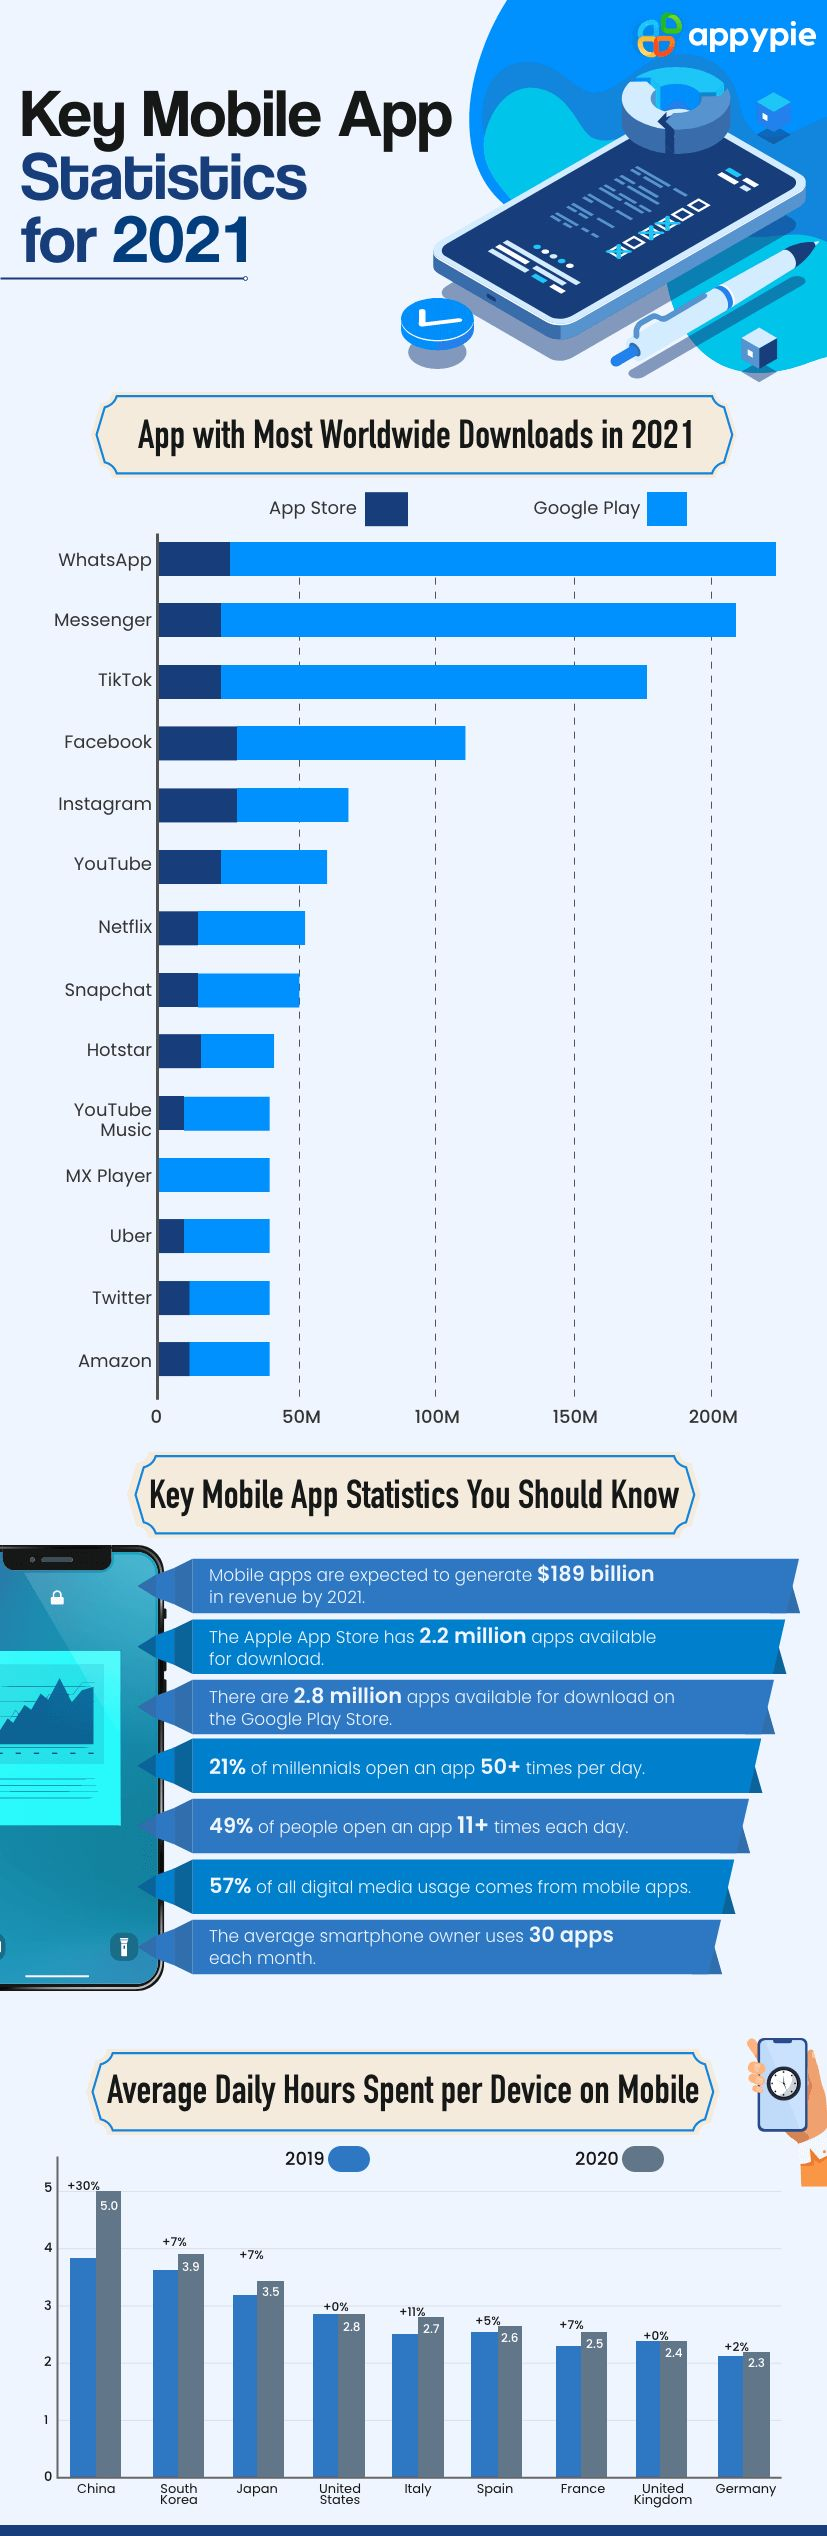 Why Global App Development Thrives in 2021 - Appy Pie